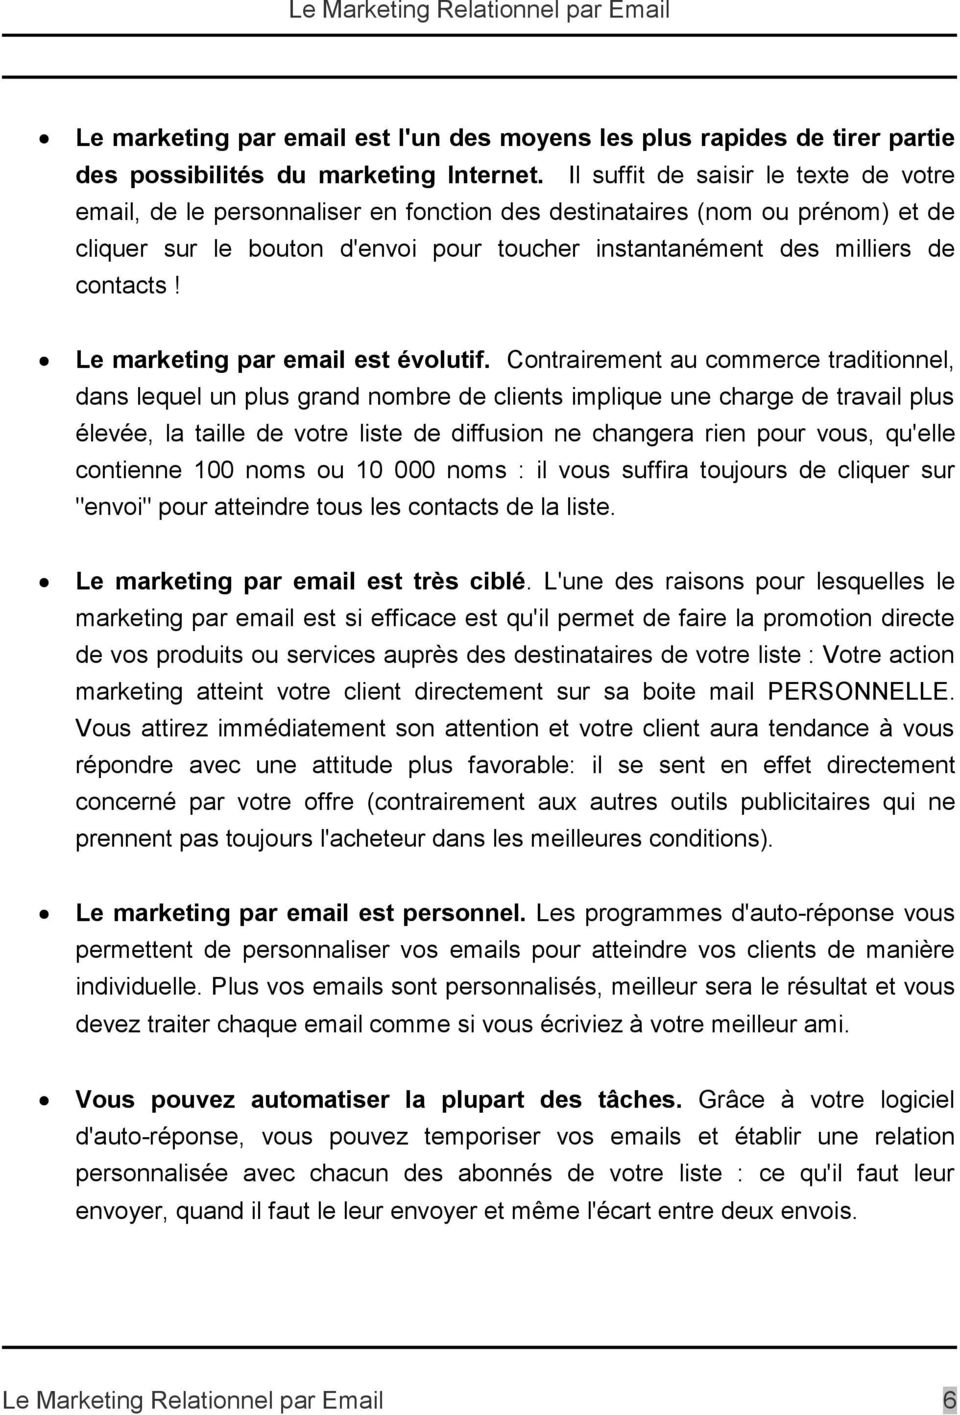 Le marketing par email est évolutif.